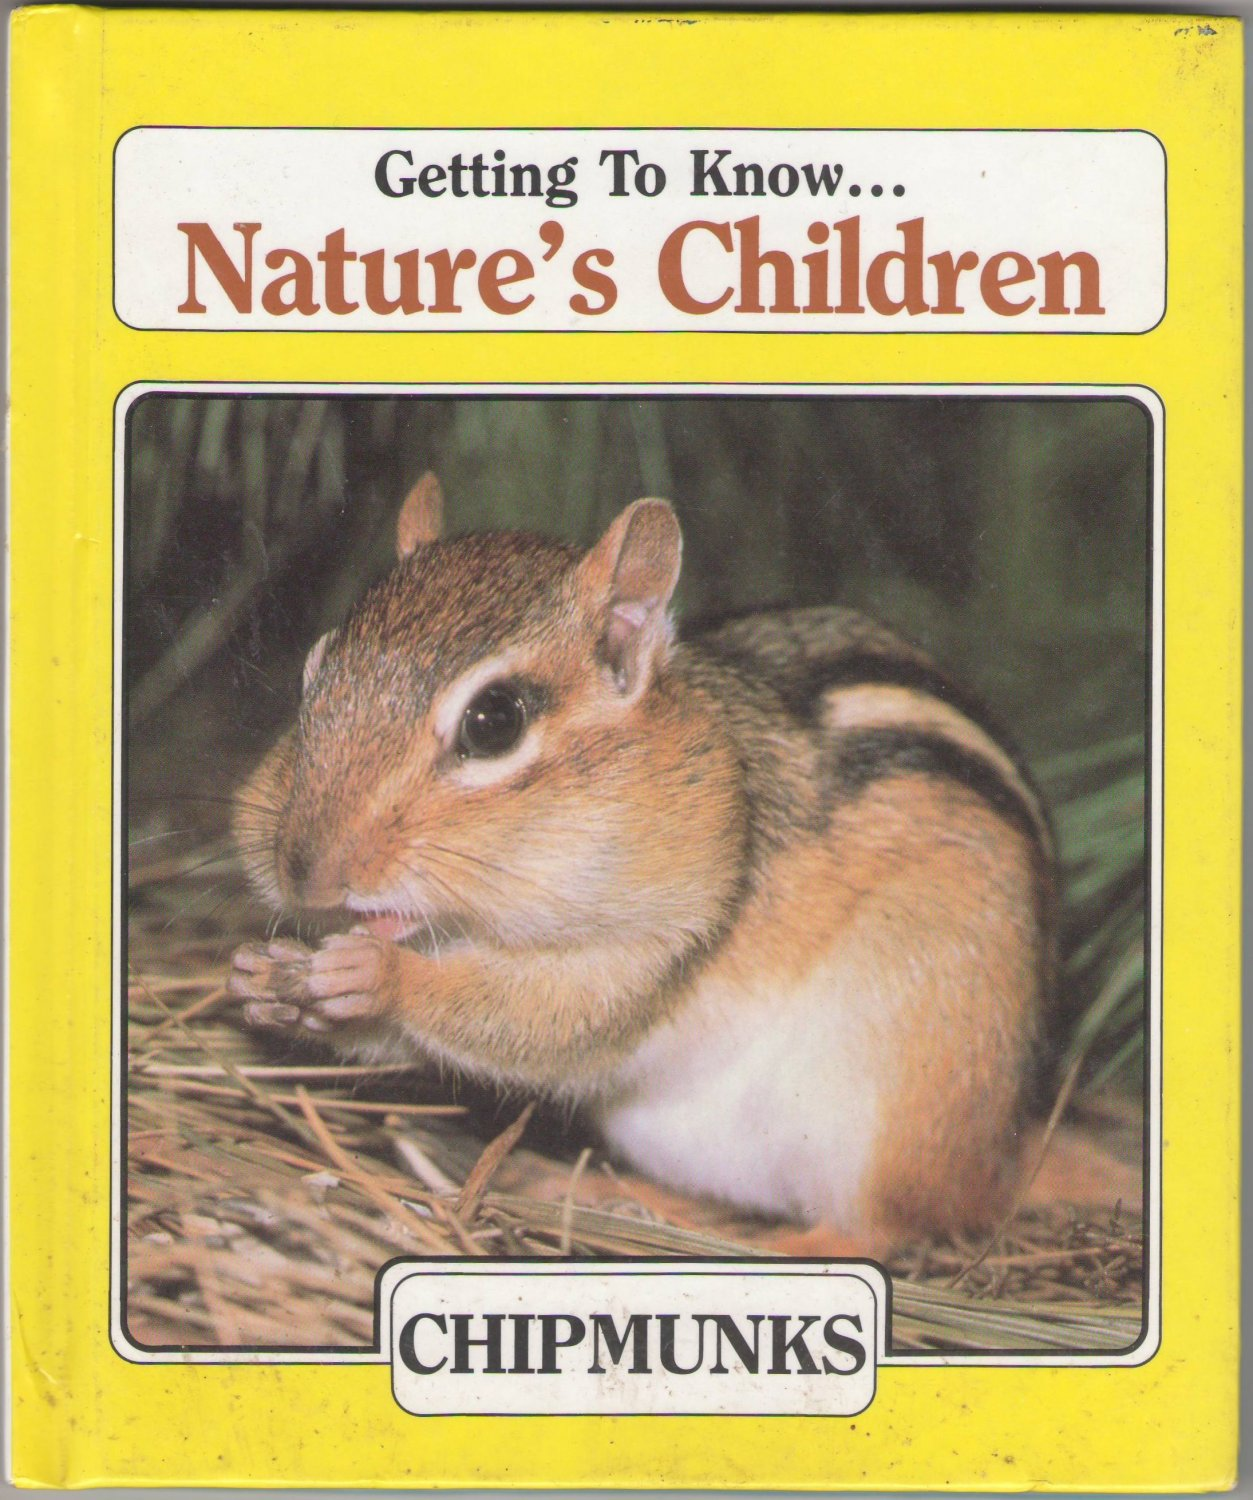 Getting To Know... Nature's Children Chipmunks Beaver SMC